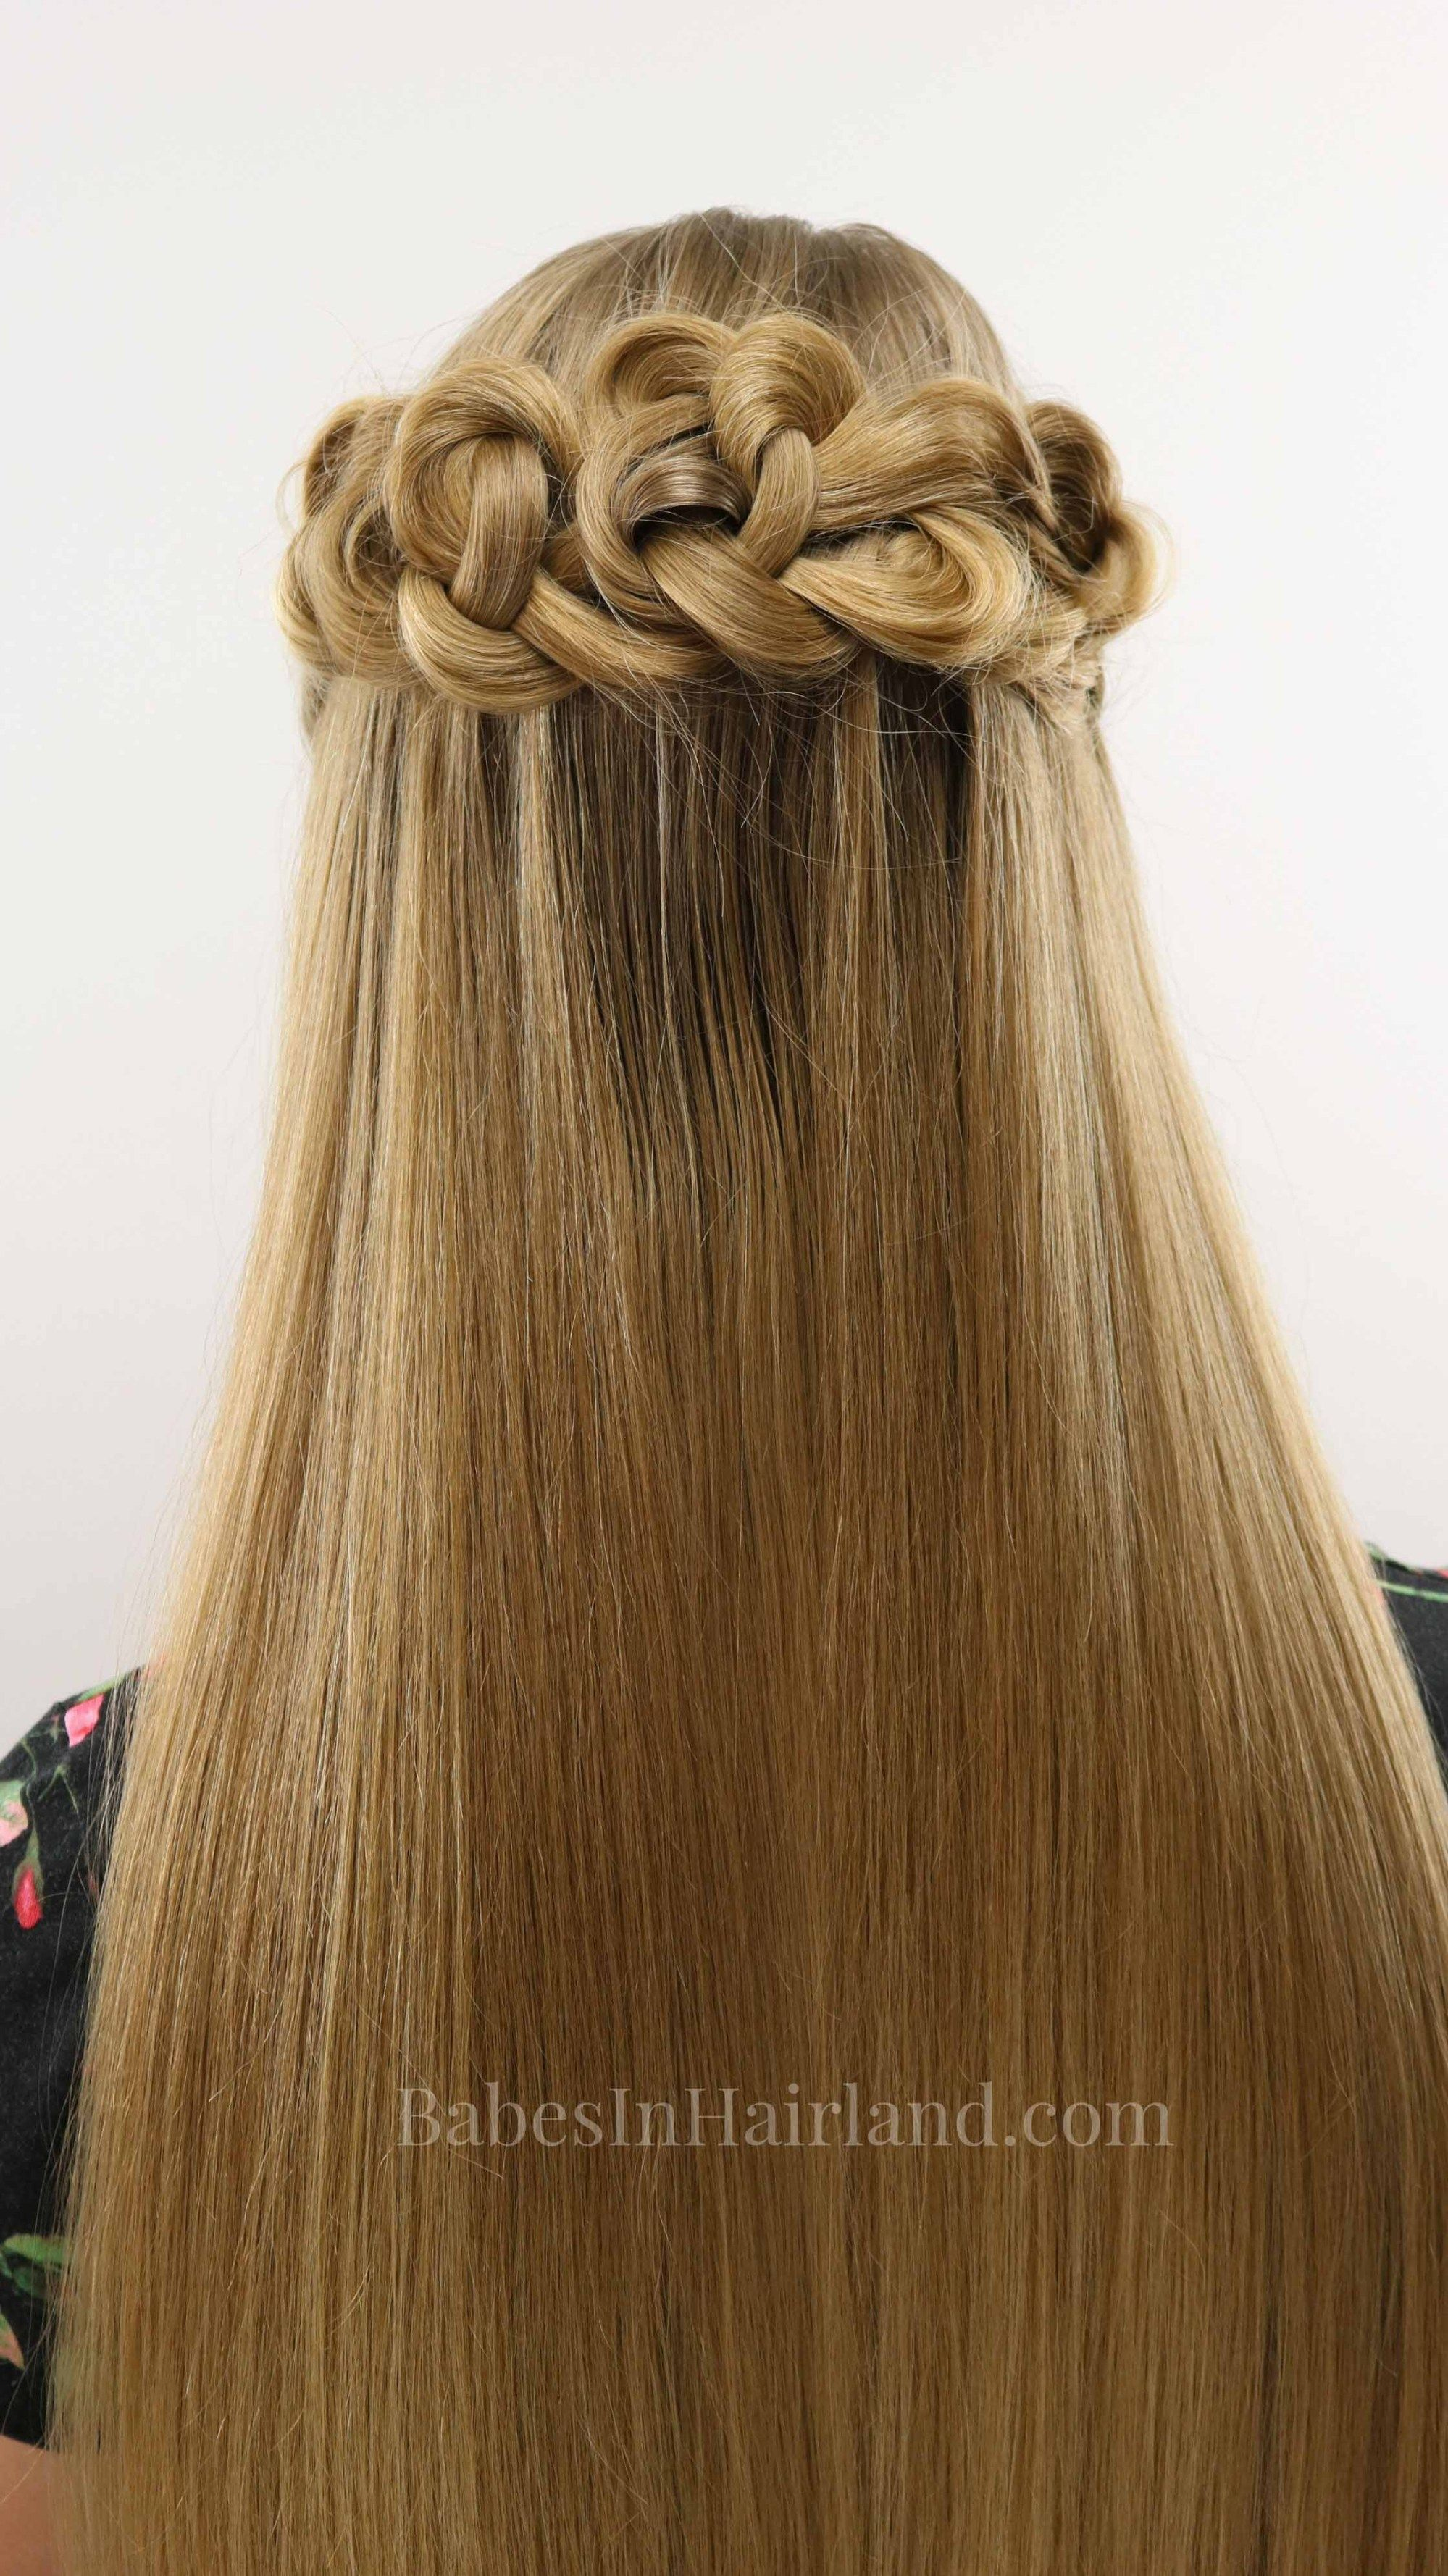 Halfup daisy chains hairstyle hair of instagram pinterest